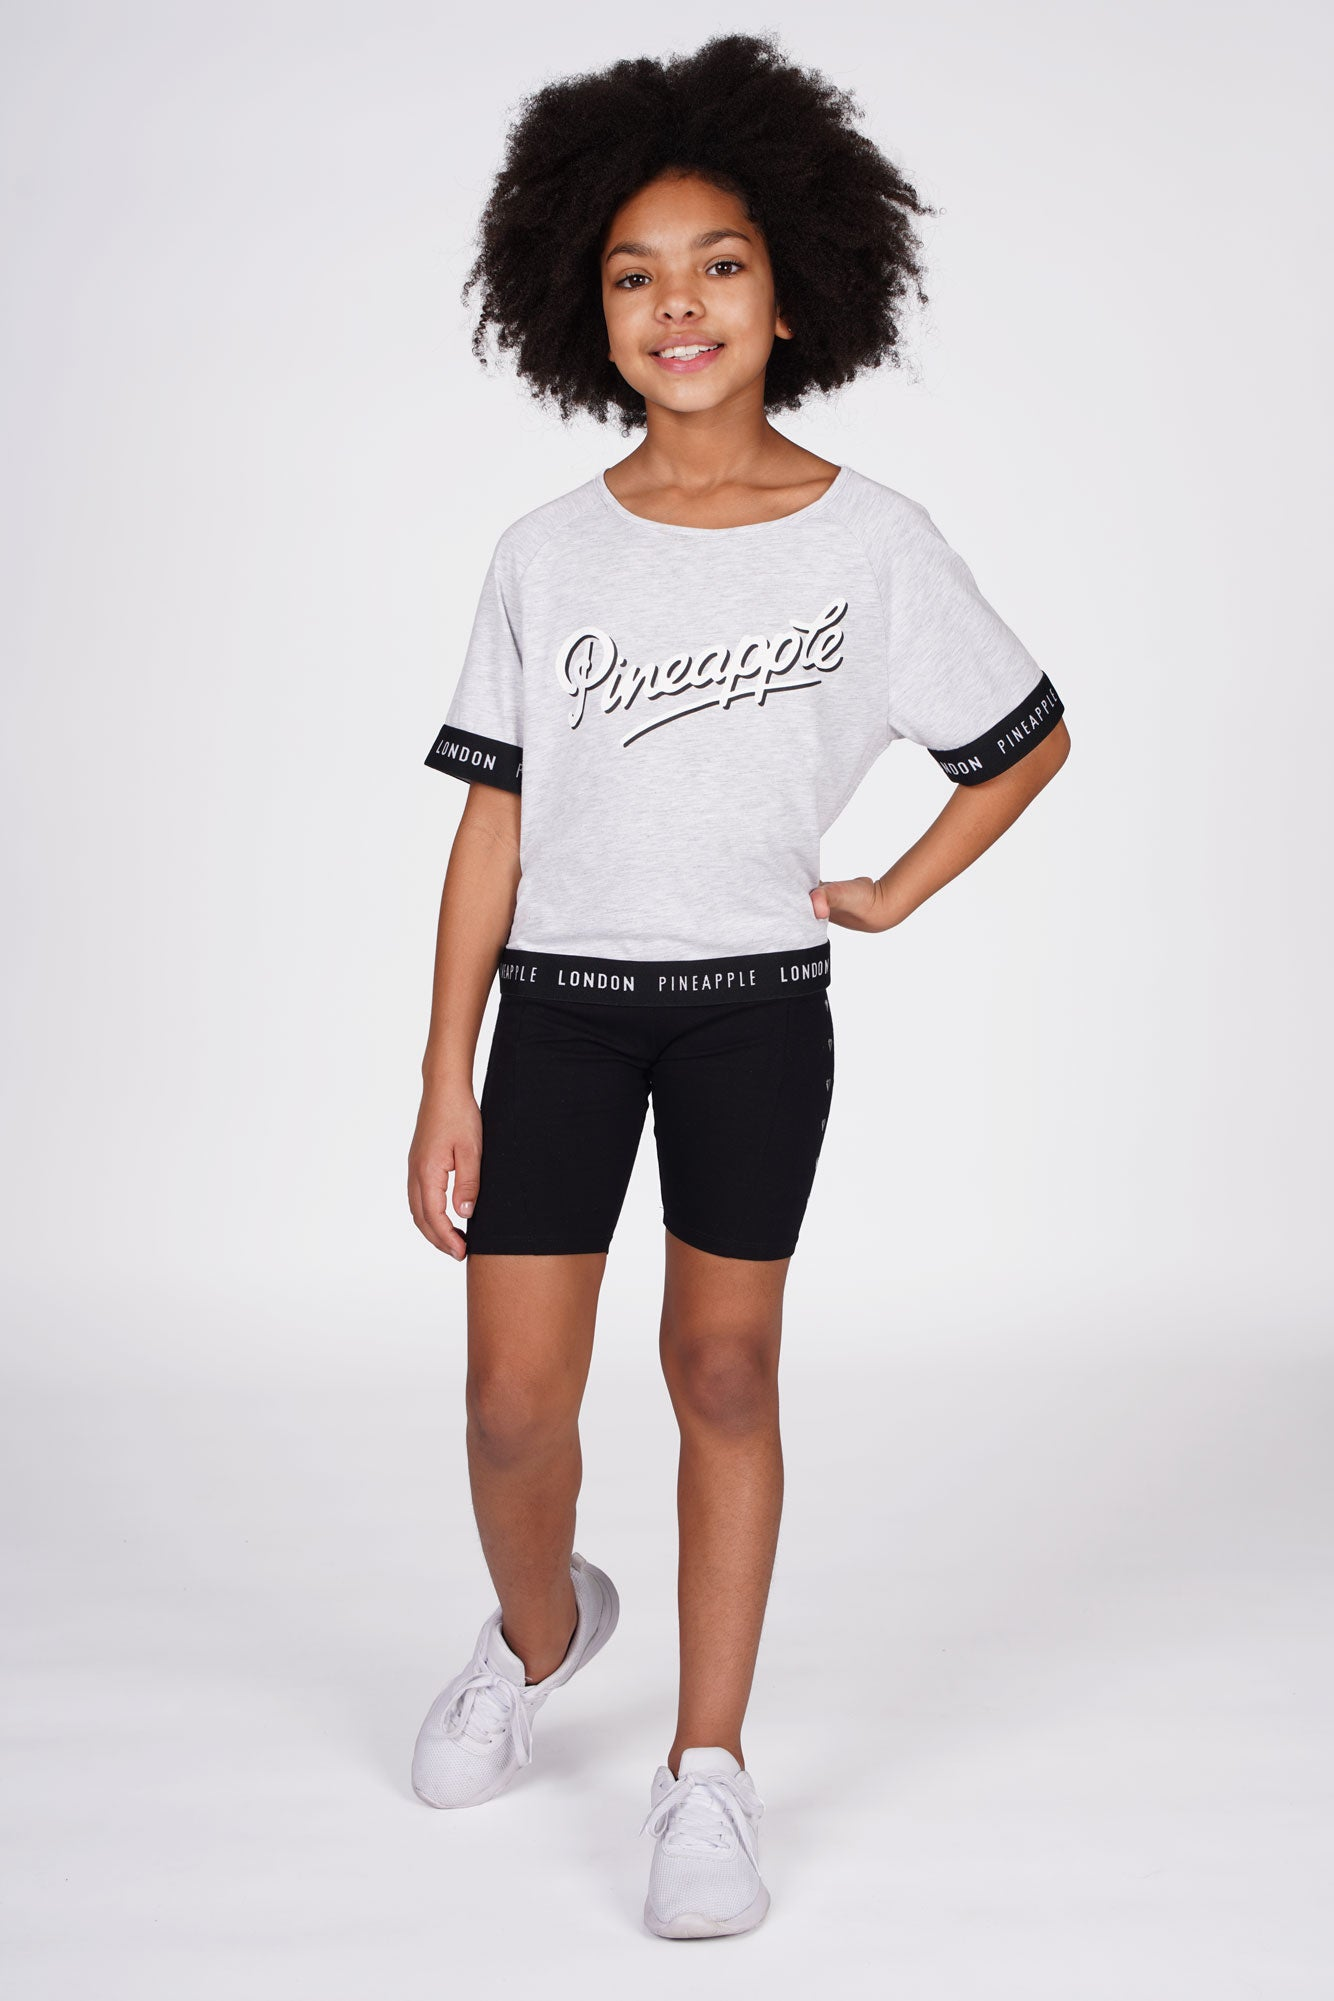 Girl wearing Heart Stud Black Cycling Shorts with grey  jacquard t-shirt